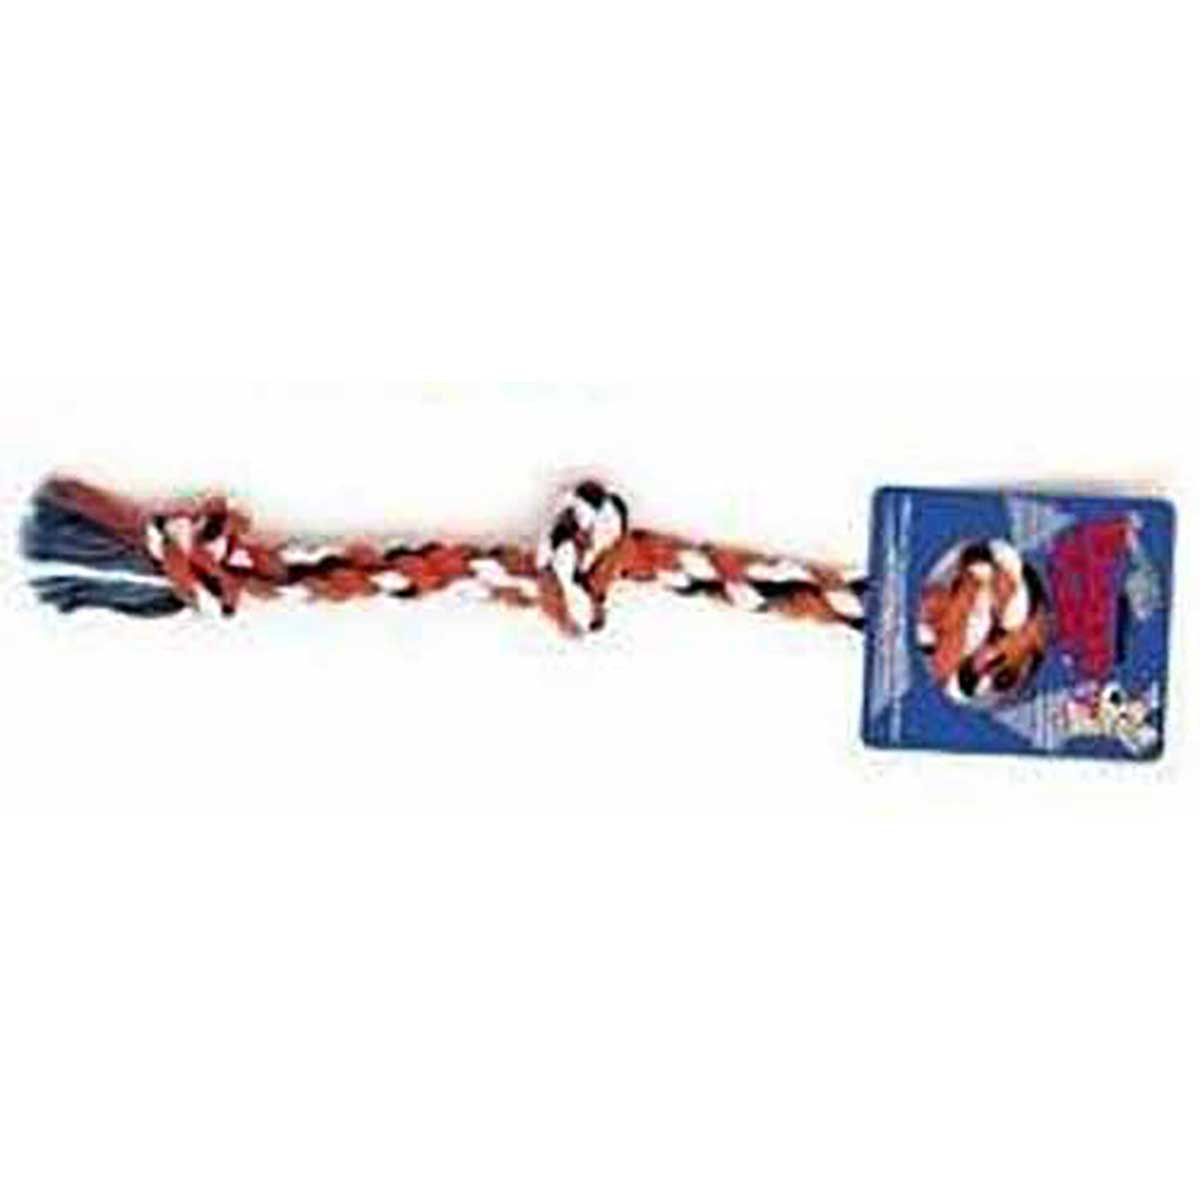 Mammoth Large 3 Knot Colored Rope Tug in Various Colors